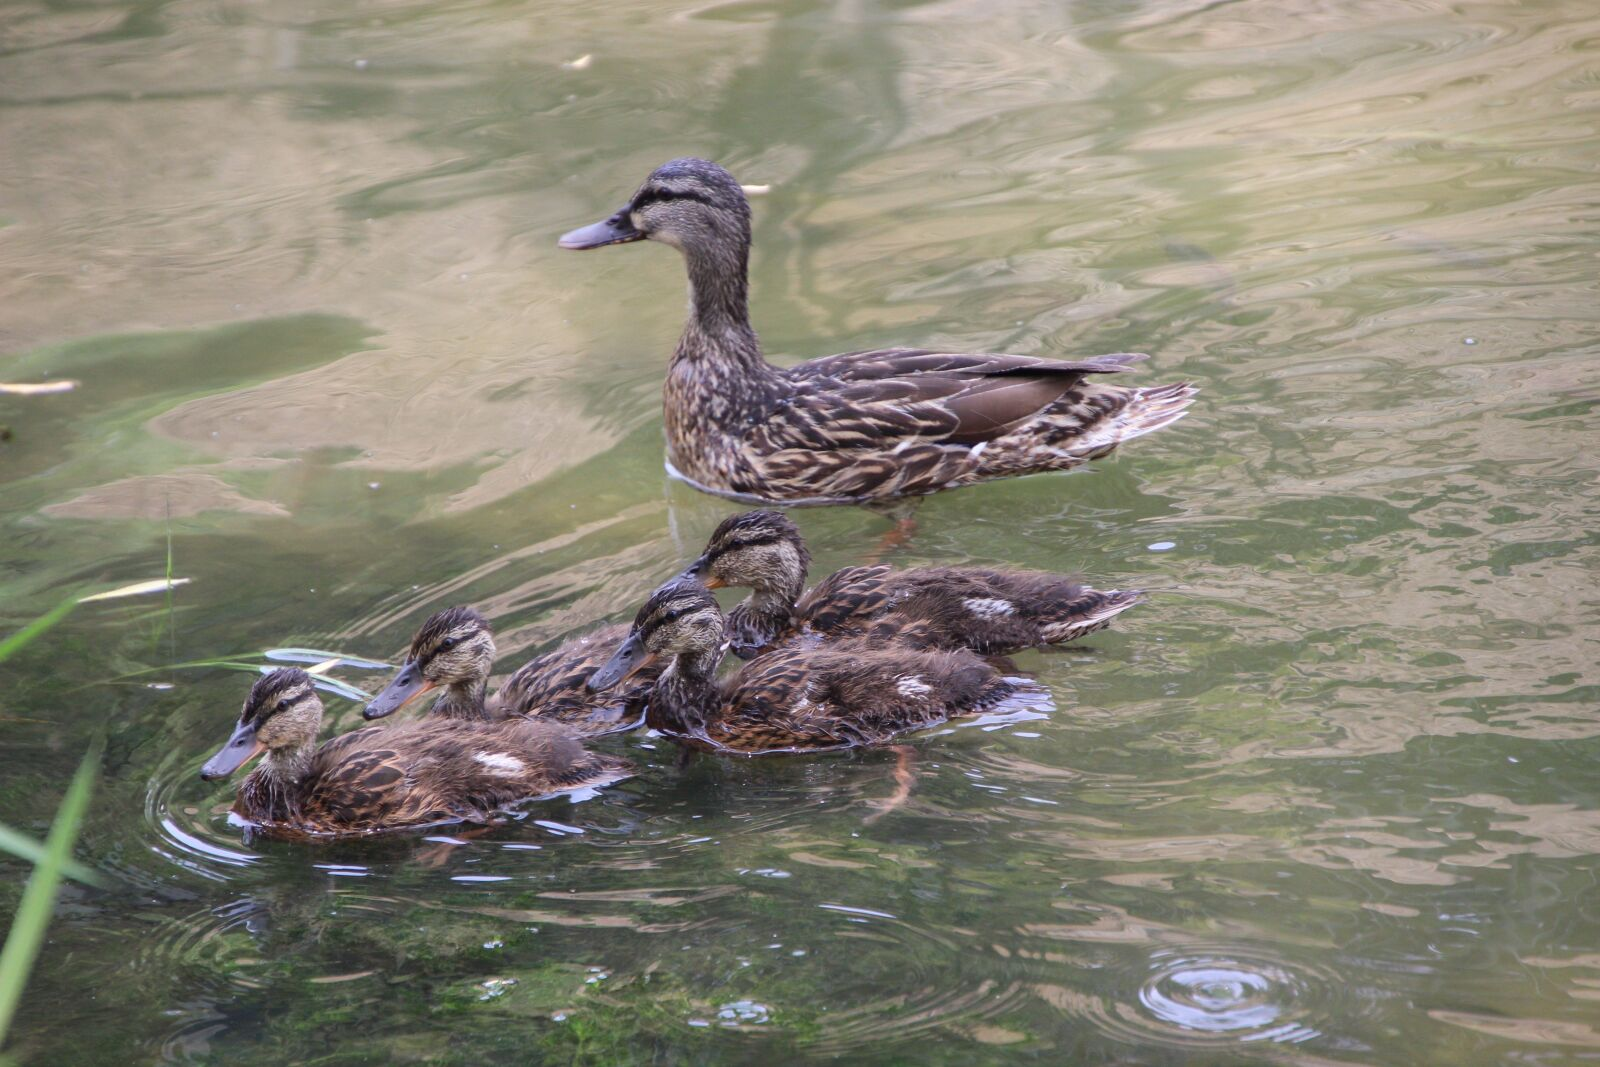 """Canon EOS 600D (Rebel EOS T3i / EOS Kiss X5) sample photo. """"Duck, duckling, lake"""" photography"""